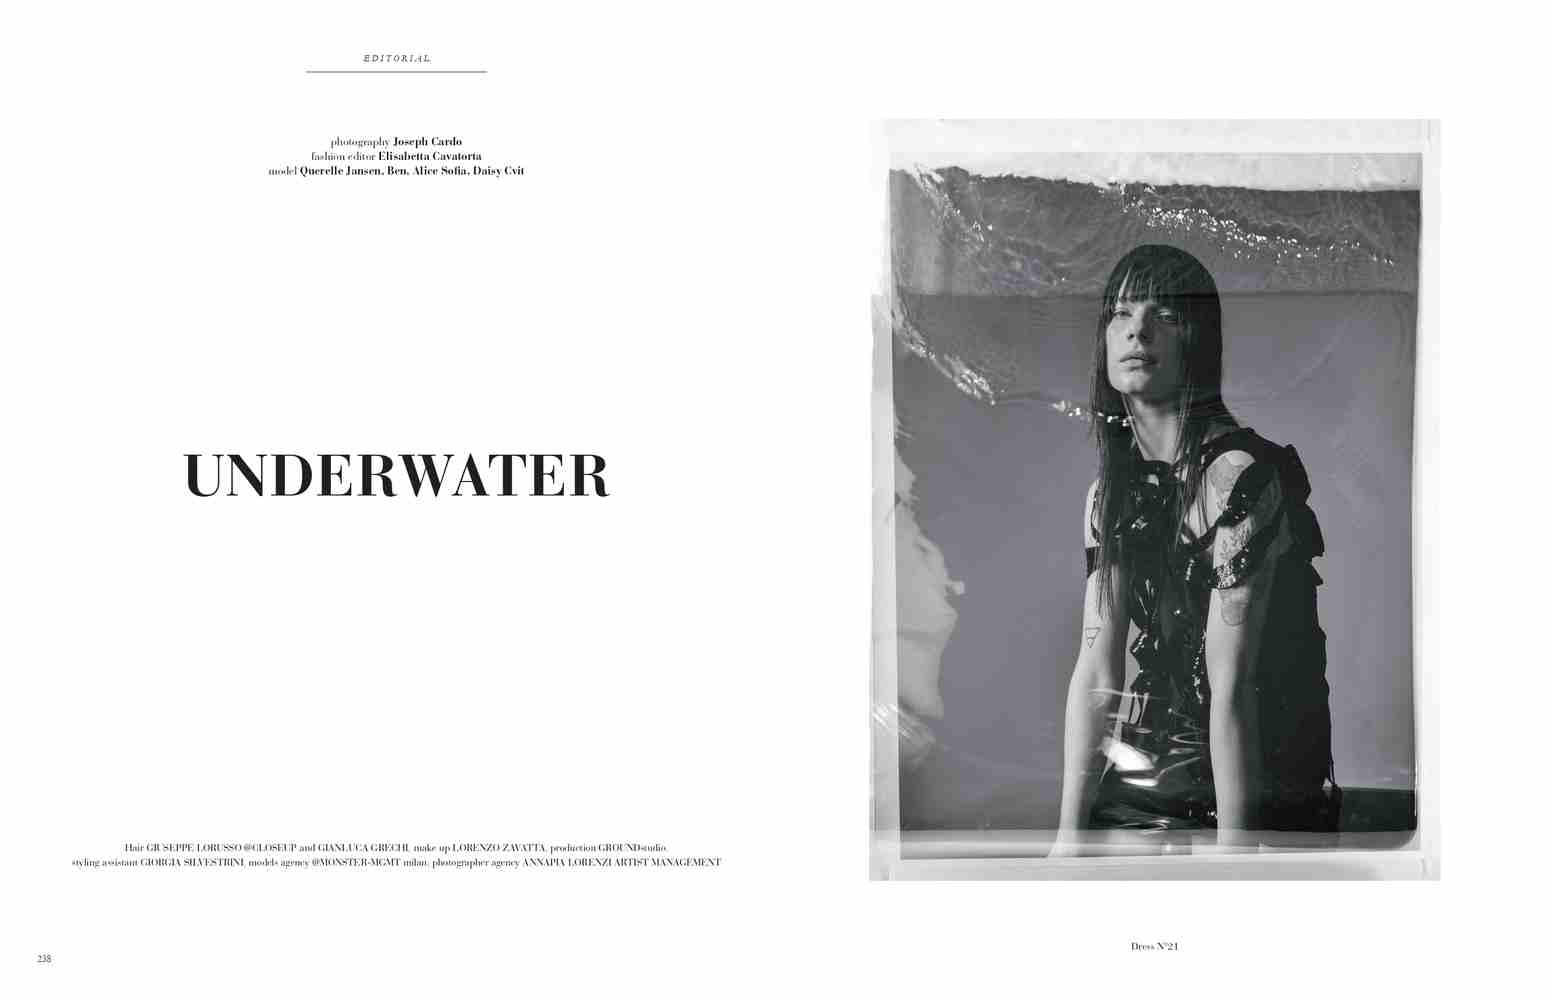 Elisabetta Cavatorta Stylist - Under Water - Joseph Cardo - Mia Le Journal